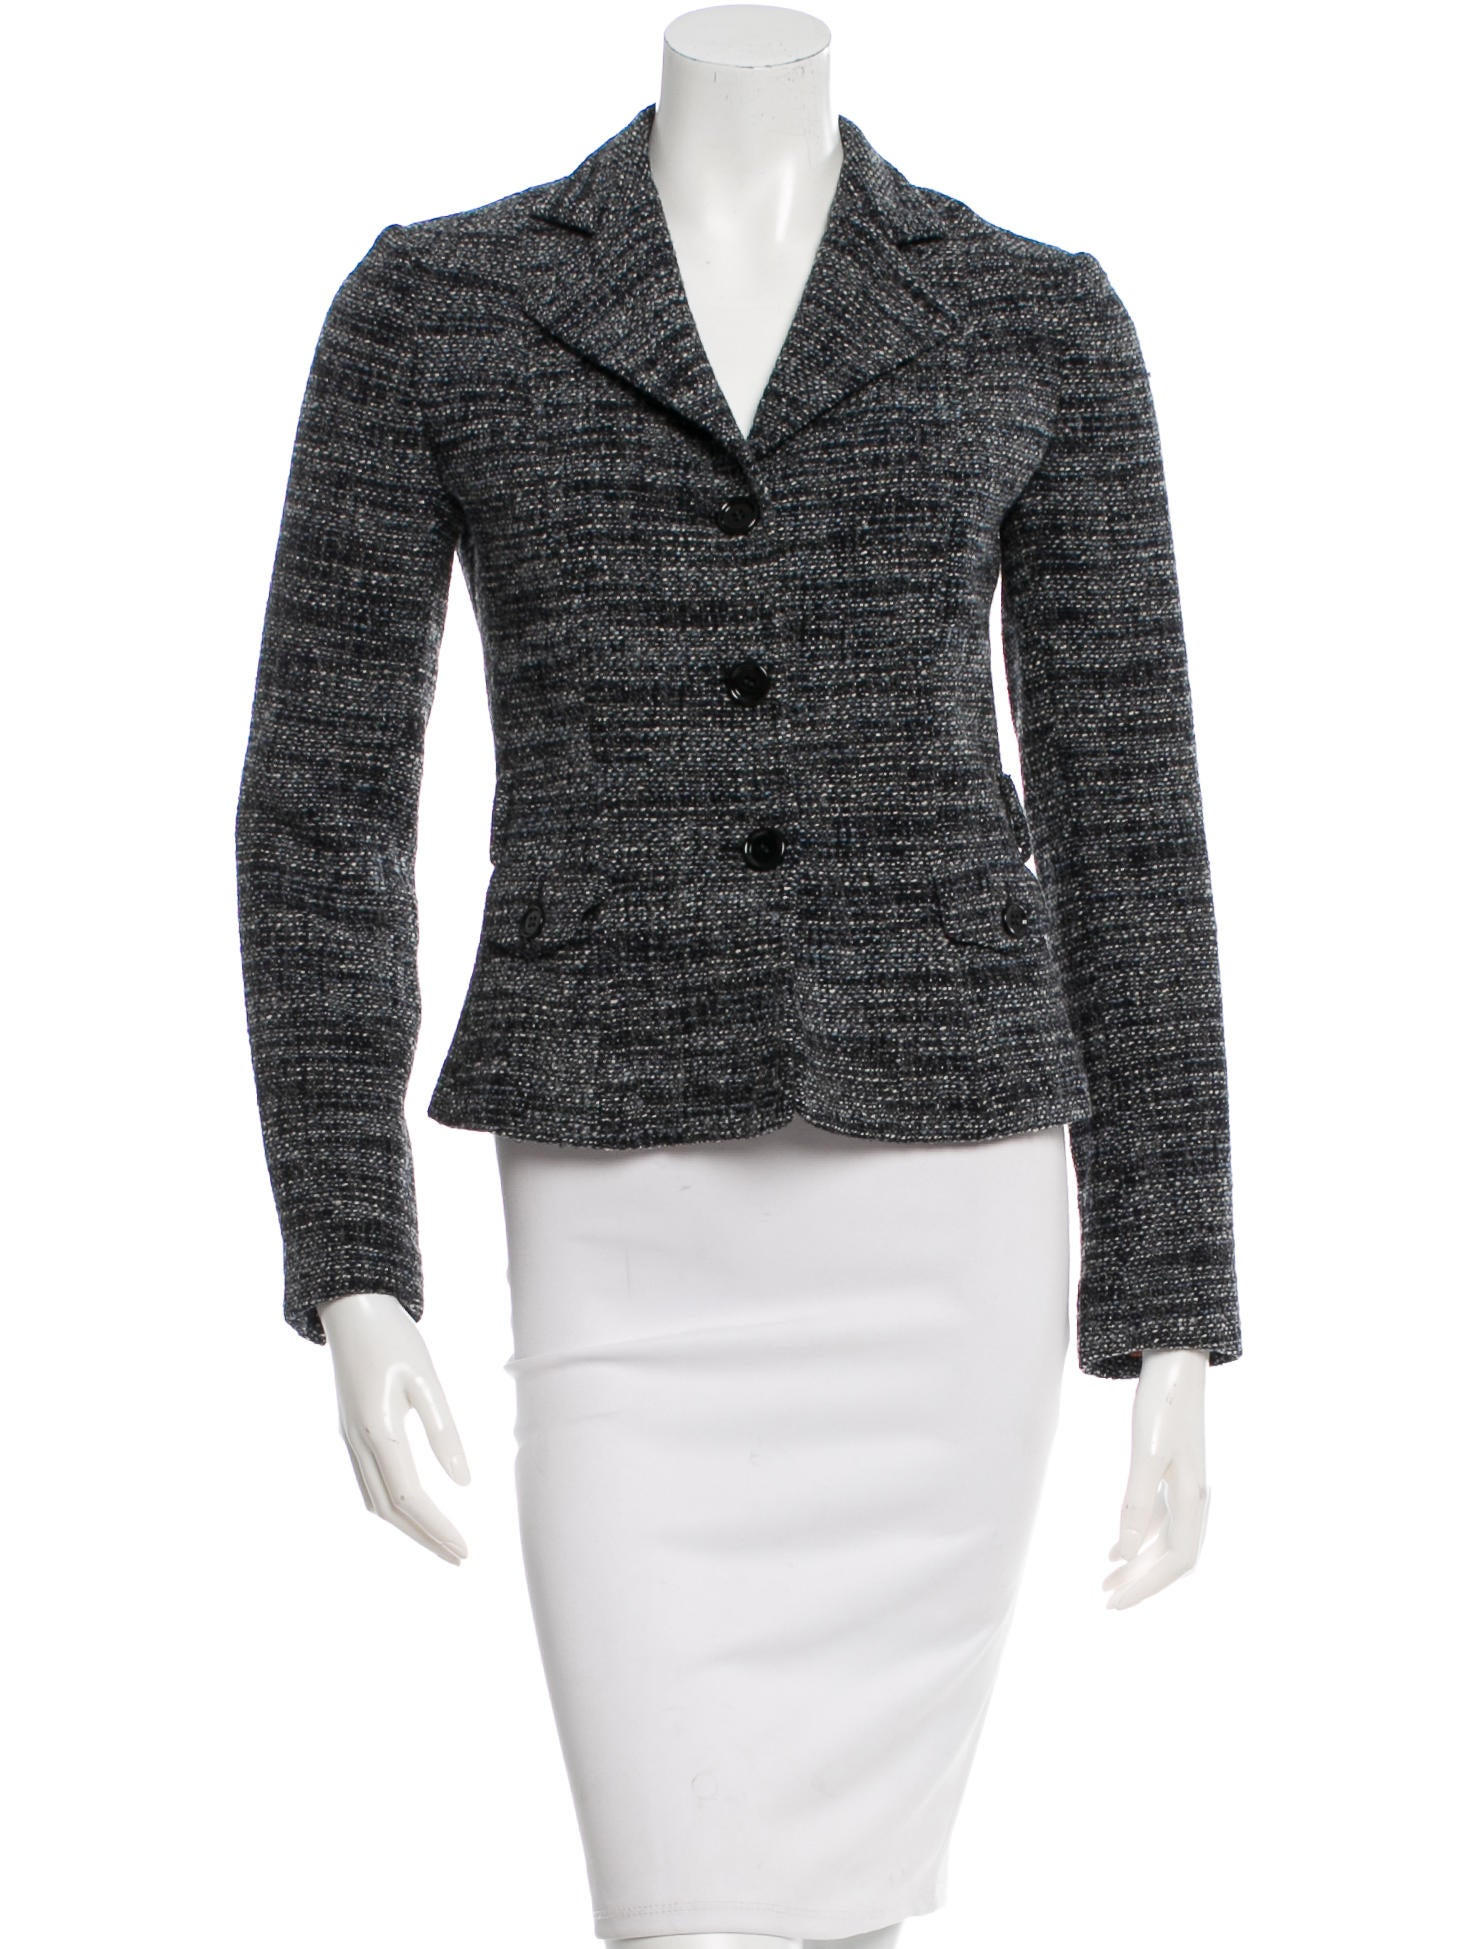 Free shipping LIMITED OFFER Chest Pocket Tweed Casual Blazer in CAPPUCCINO 3XL with only $ online and shop other cheap Suits & Blazers on sale at warmongeri.ga